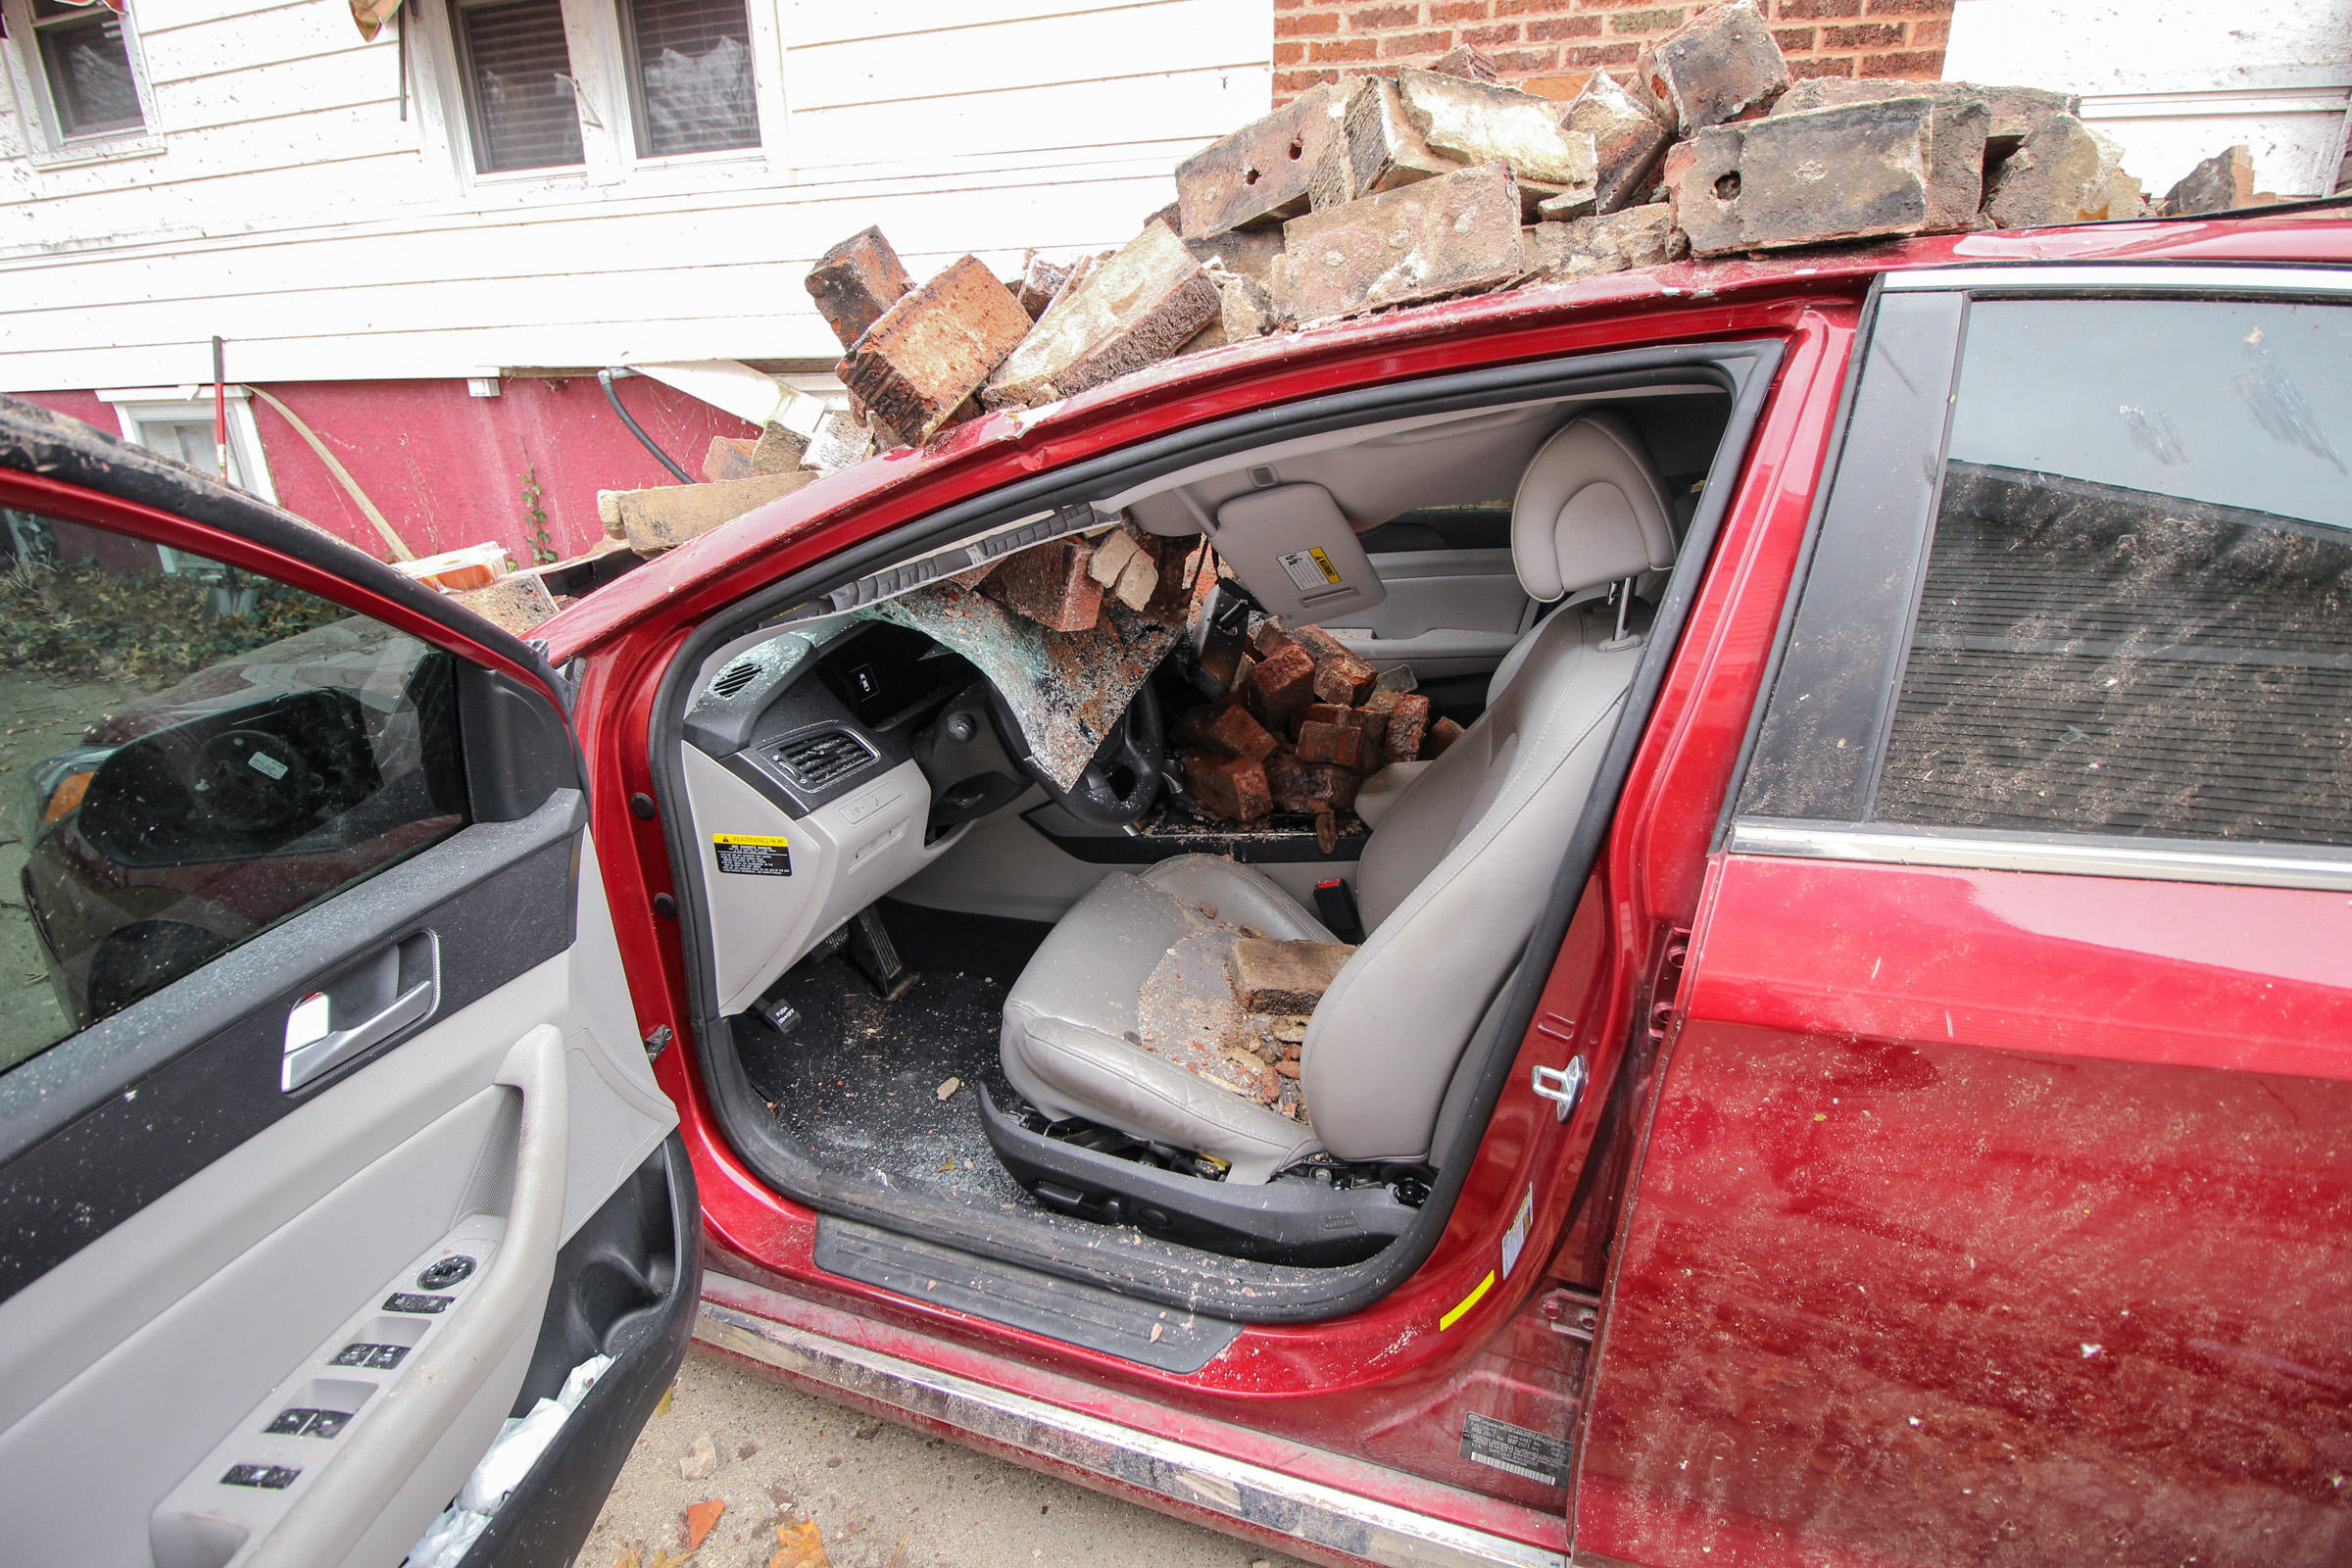 A brick chimney smashed through the roof a car during Saturday's tornado in Taylorville Illinois